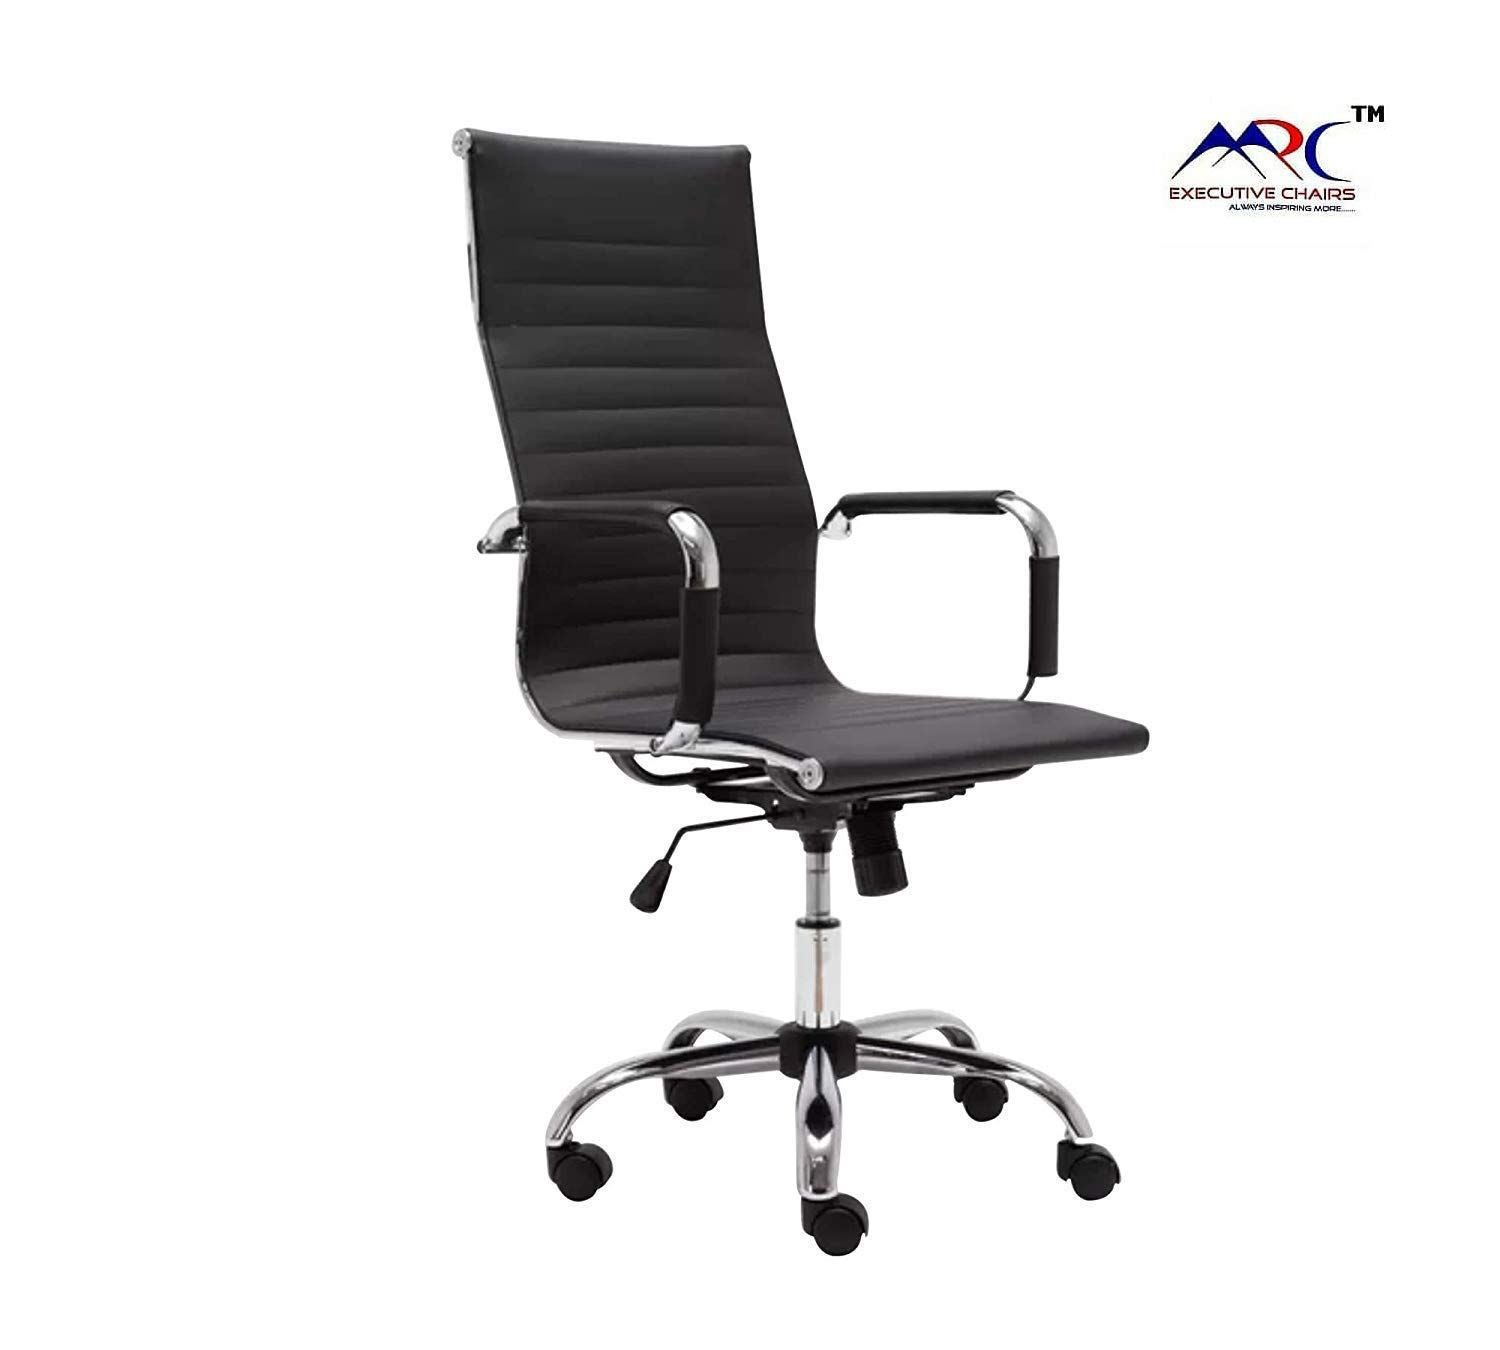 Product Dimensions Chair Height 44 5 48 Inches Seat Width 21 Inches Seat Depth 22 Inches Tilting Mechanism With Ch In 2020 Leather Chair Revolving Chair Chair